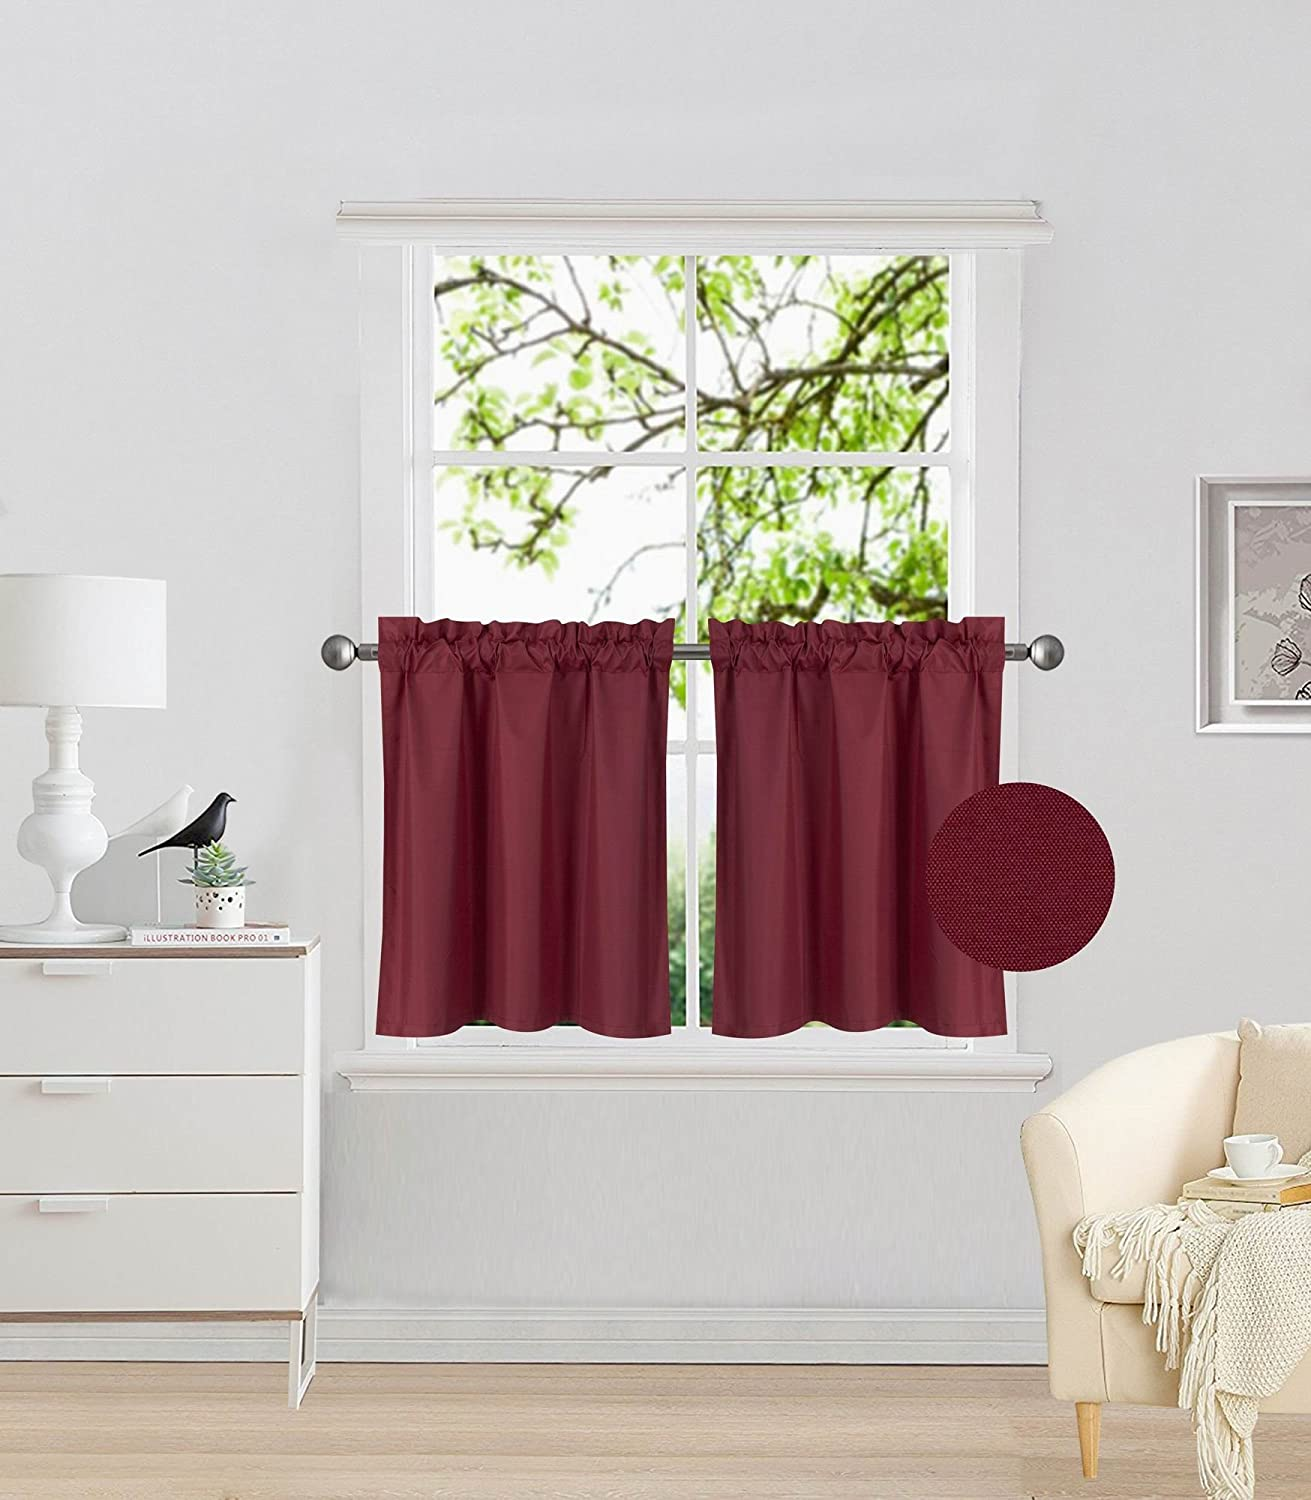 """Elegant Home 2 Panels Tiers Small Window Treatment Curtain Insulated Blackout Drape Short Panel 30"""" W X 24"""" L Each for Kitchen Bathroom or Any Small Window # R16 (Burgundy)"""